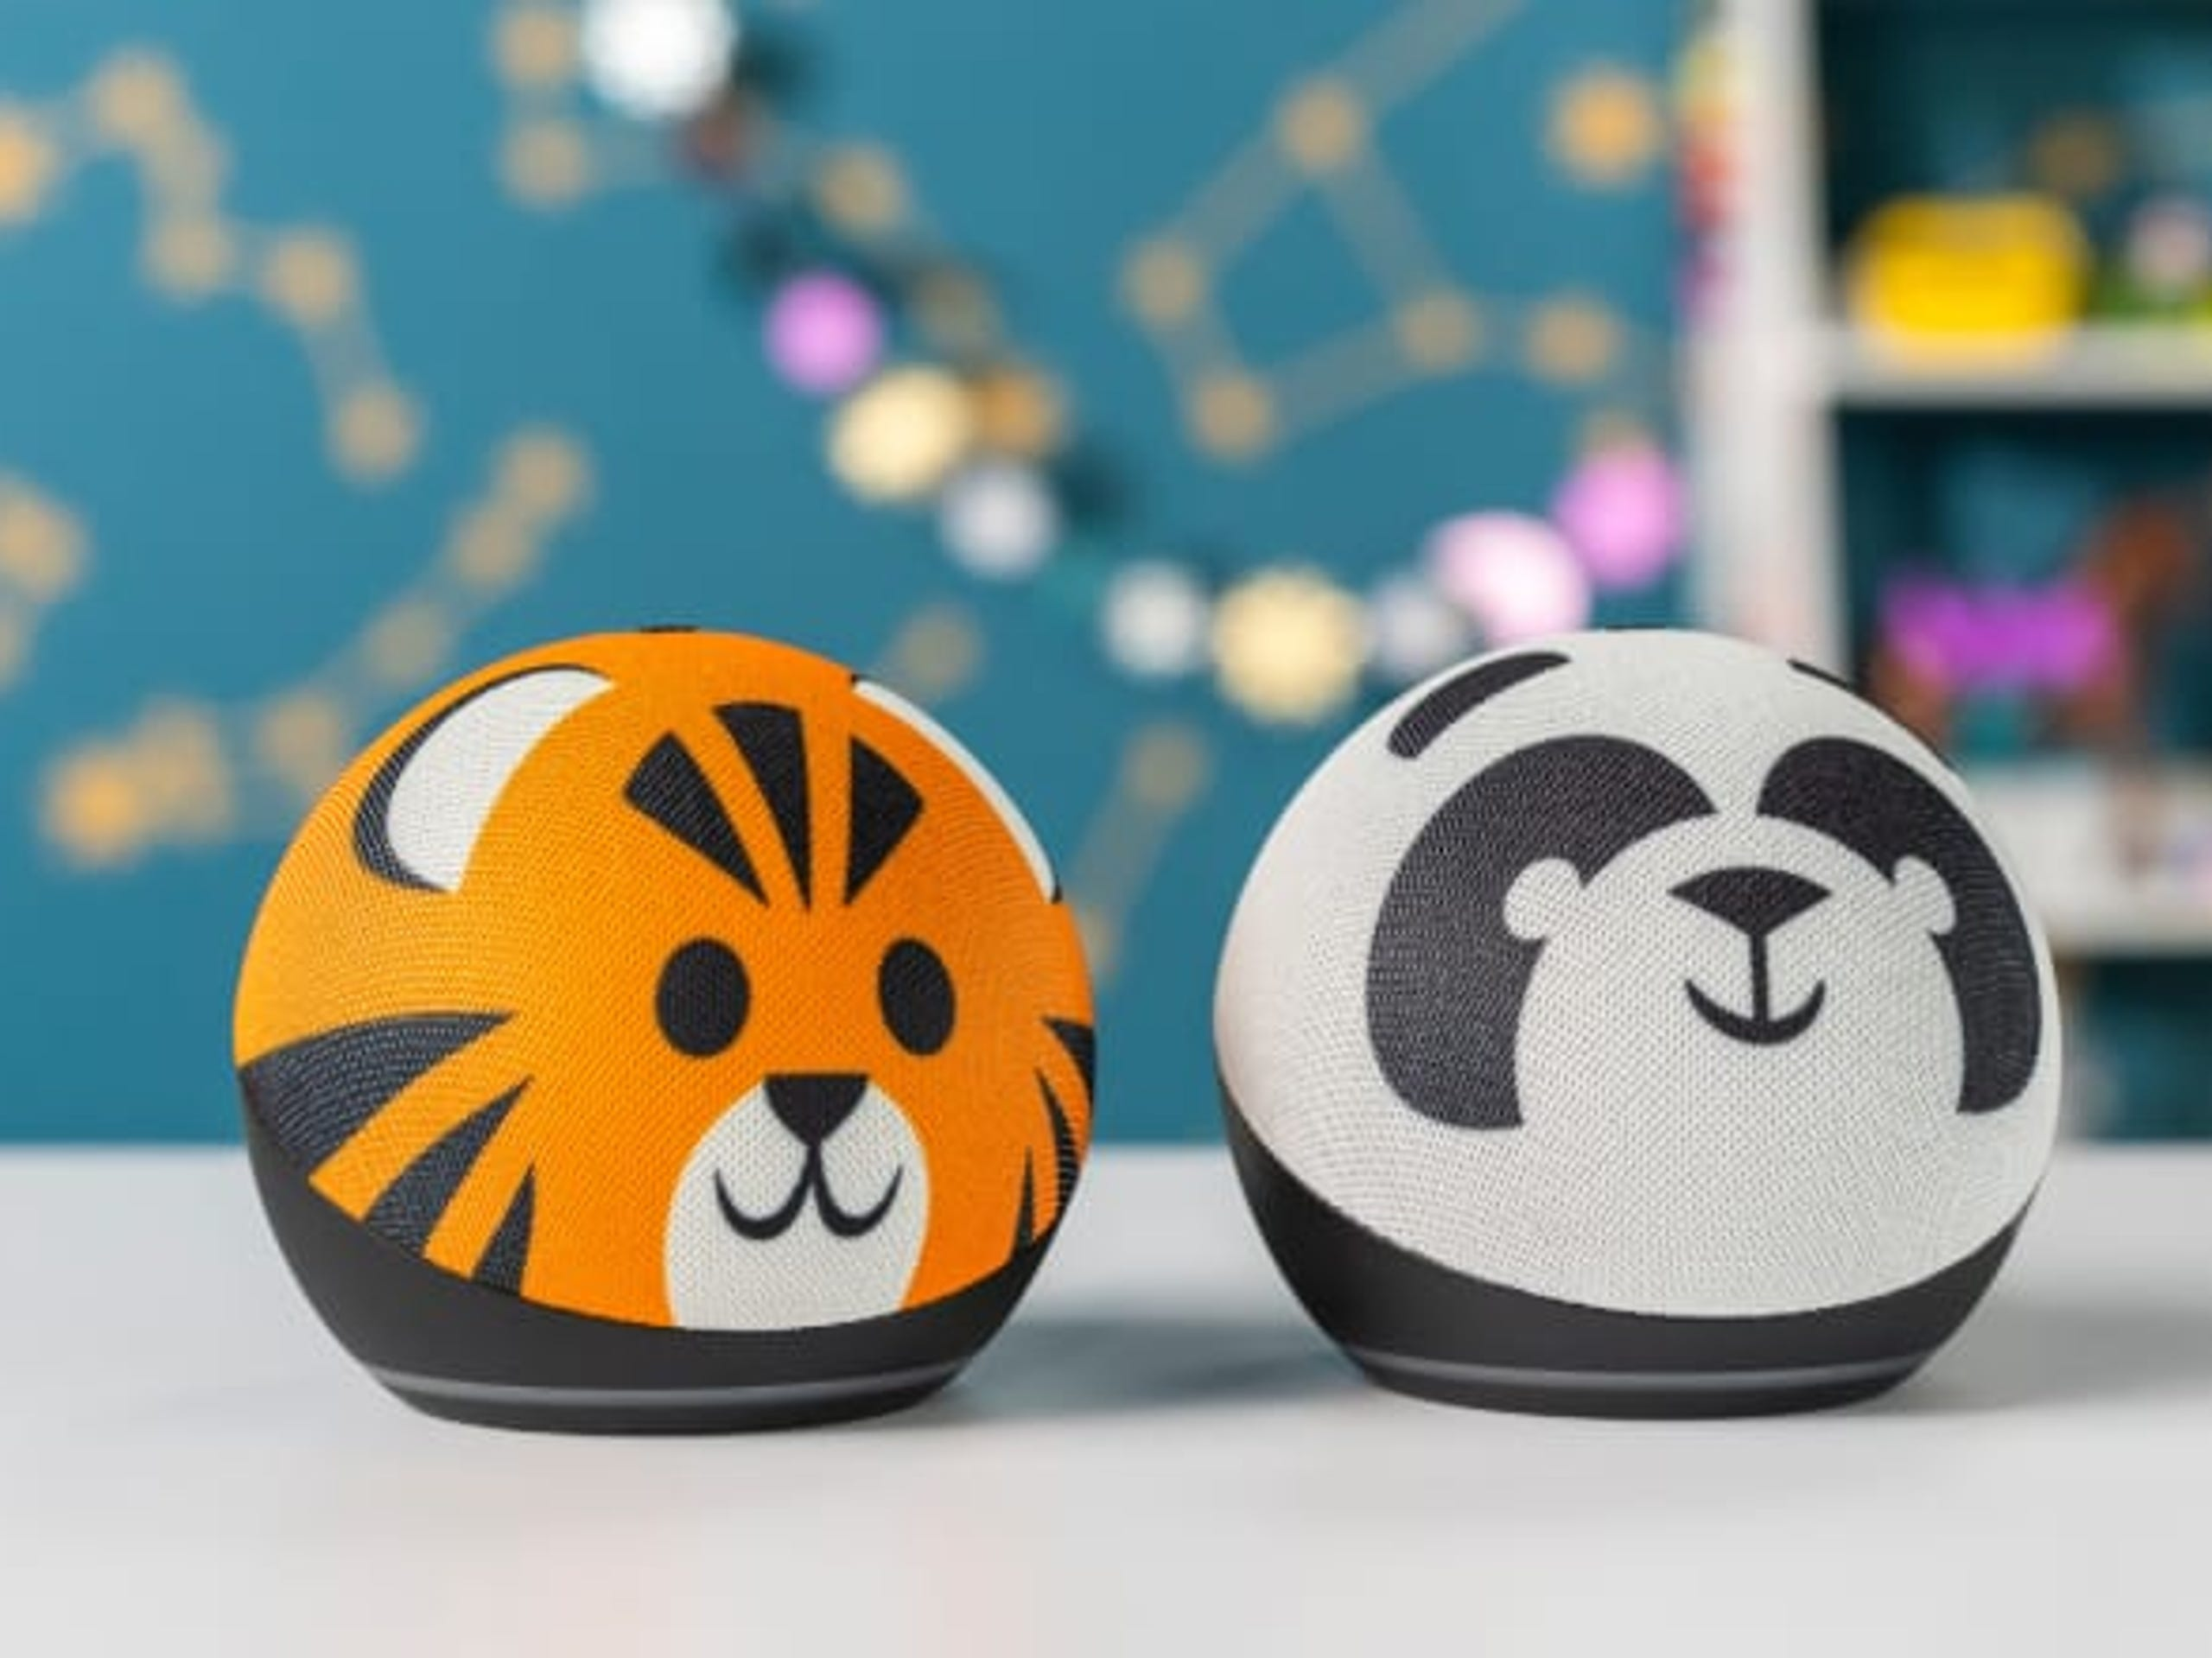 The new Echo Dot Kids Edition is covered in fabric with fun animal designs kids are sure to love.